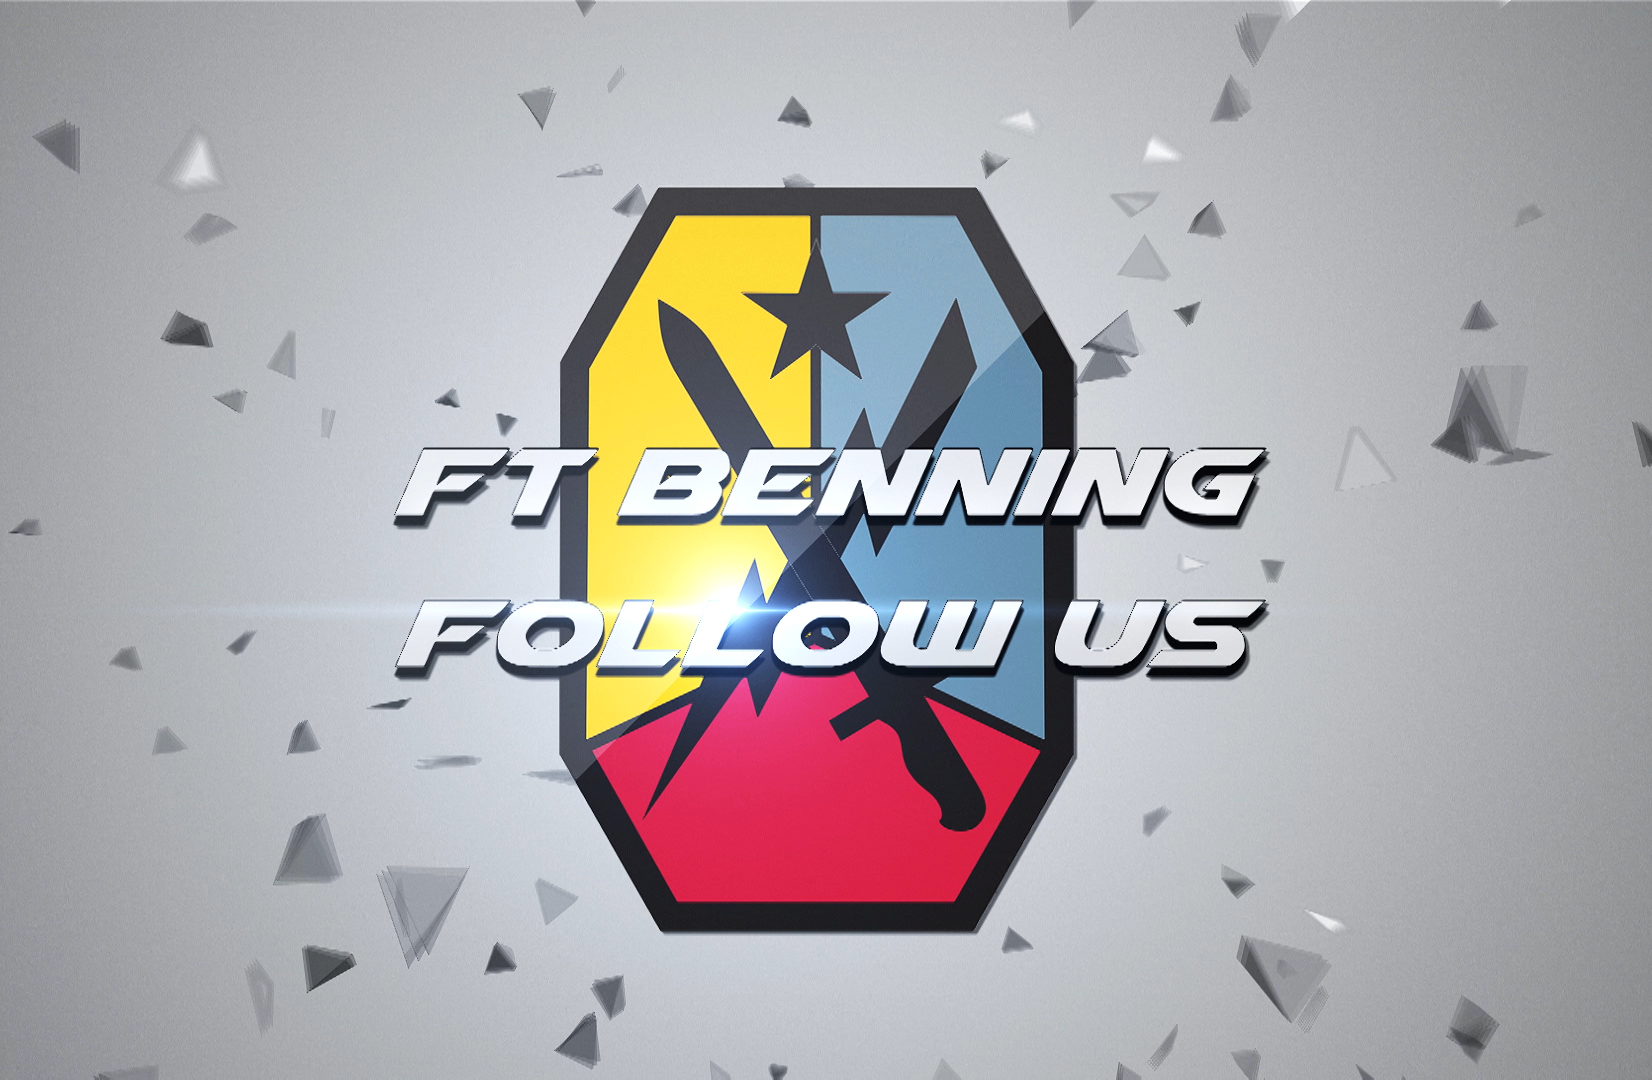 Fort Benning: Follow Us